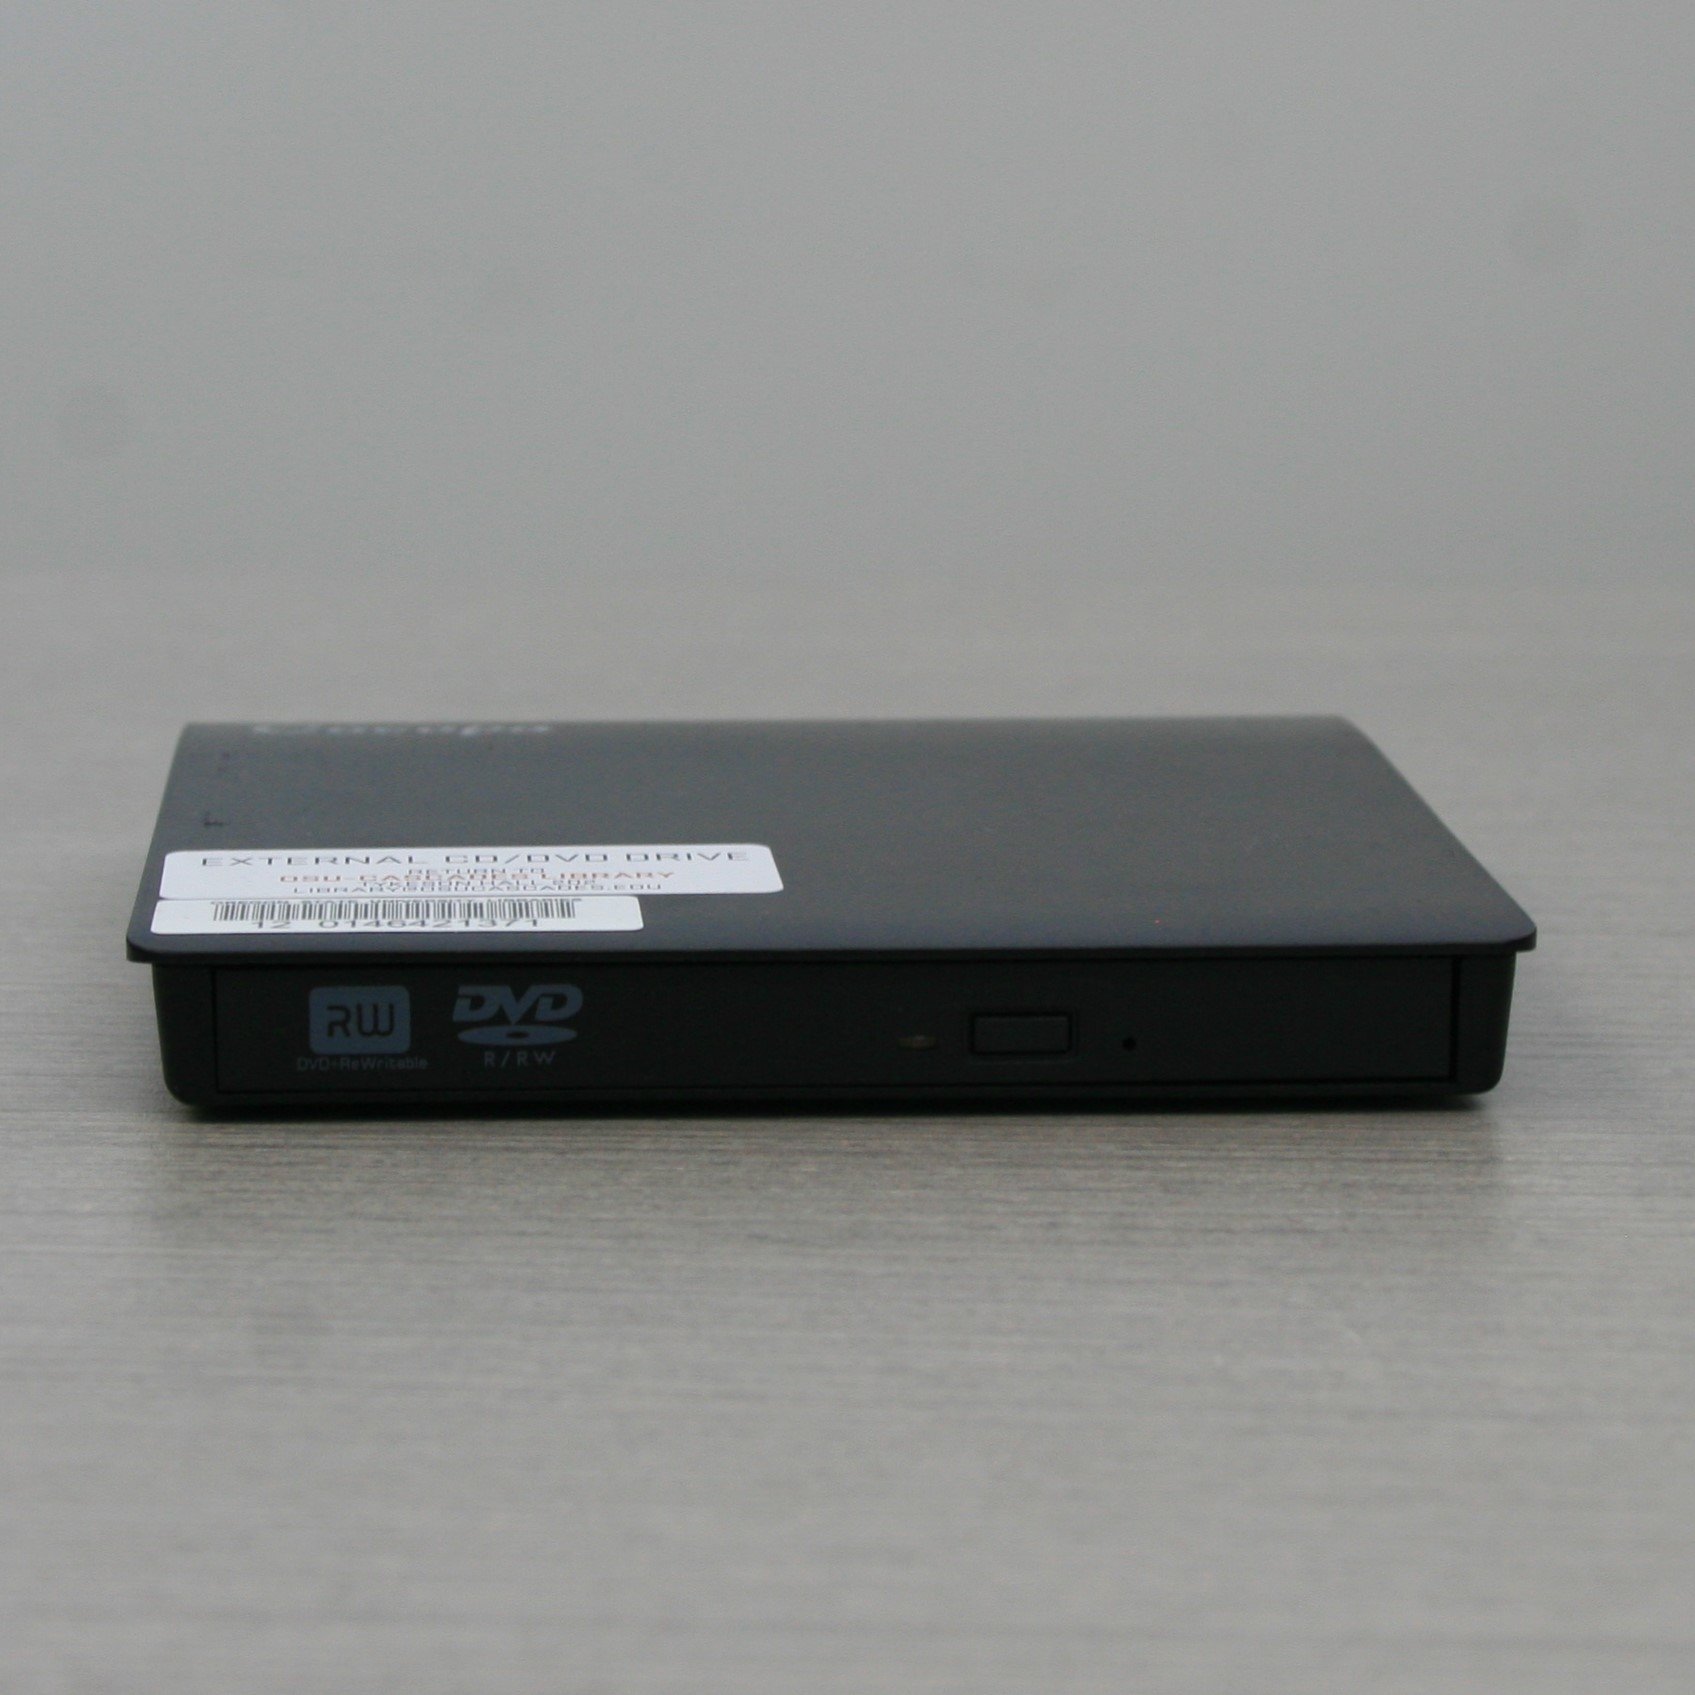 CD/DVD External Drive